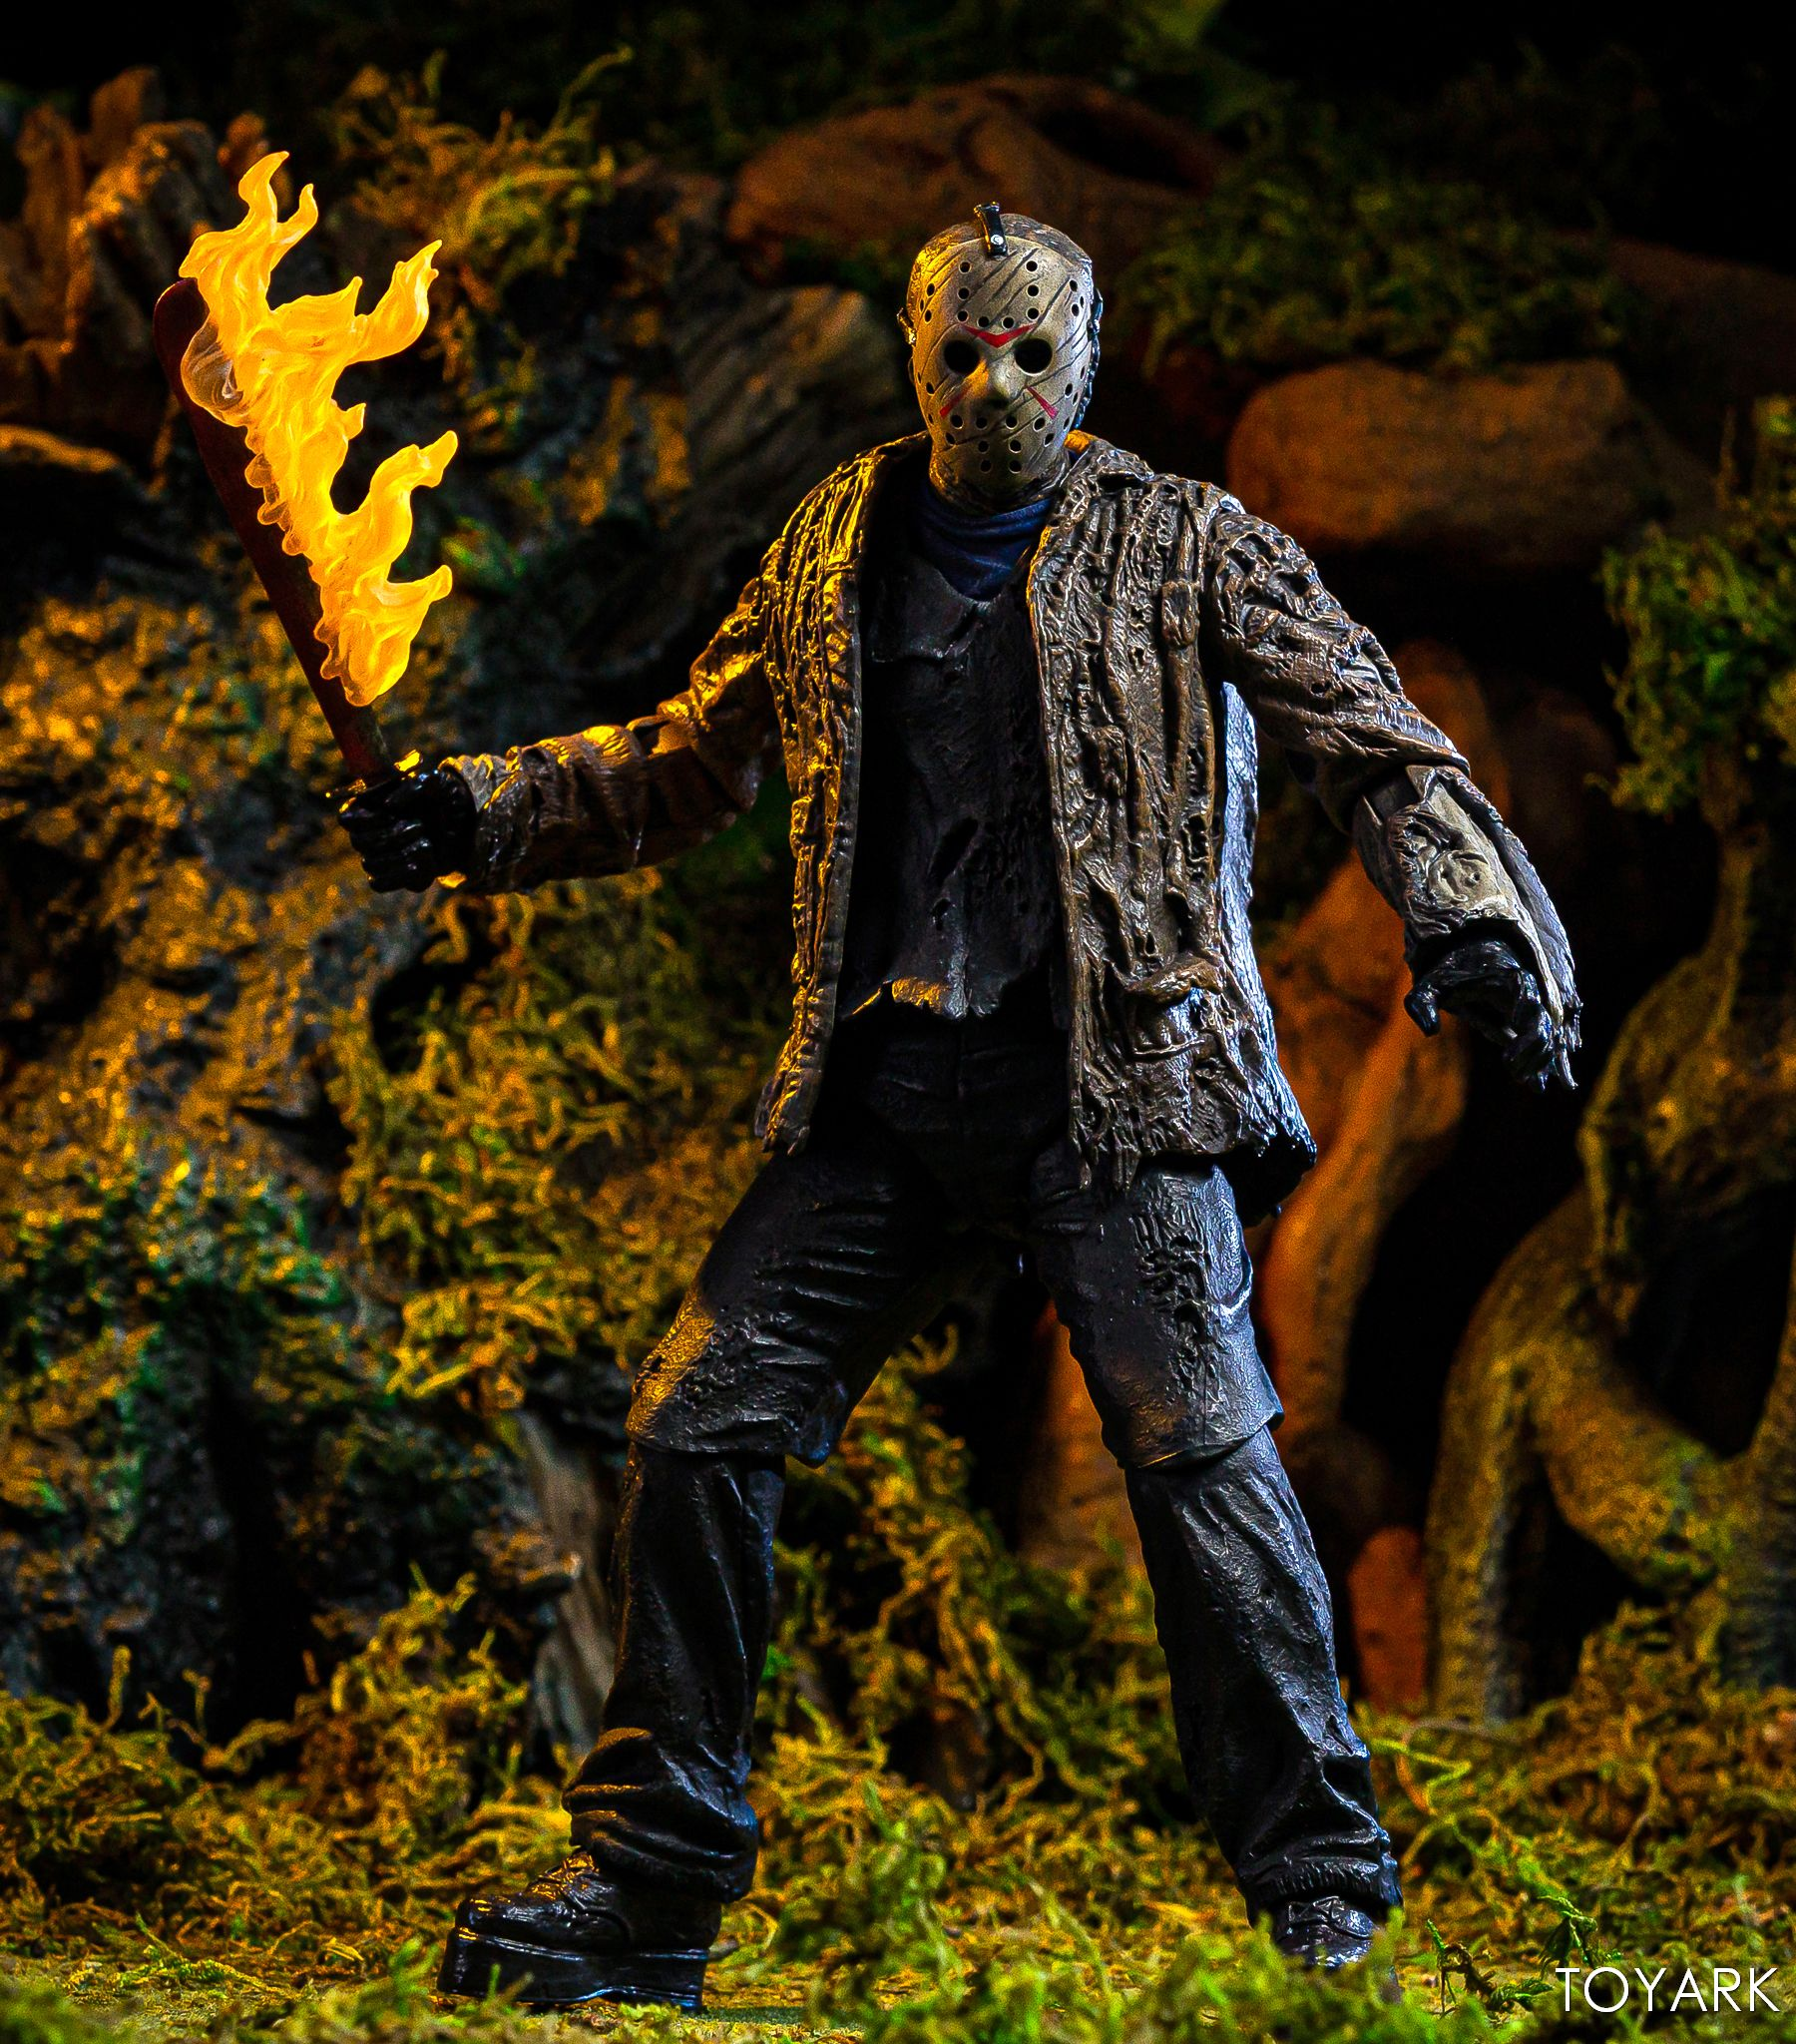 https://news.toyark.com/wp-content/uploads/sites/4/2019/07/FvJ-Jason-Voorhees-NECA-030.jpg